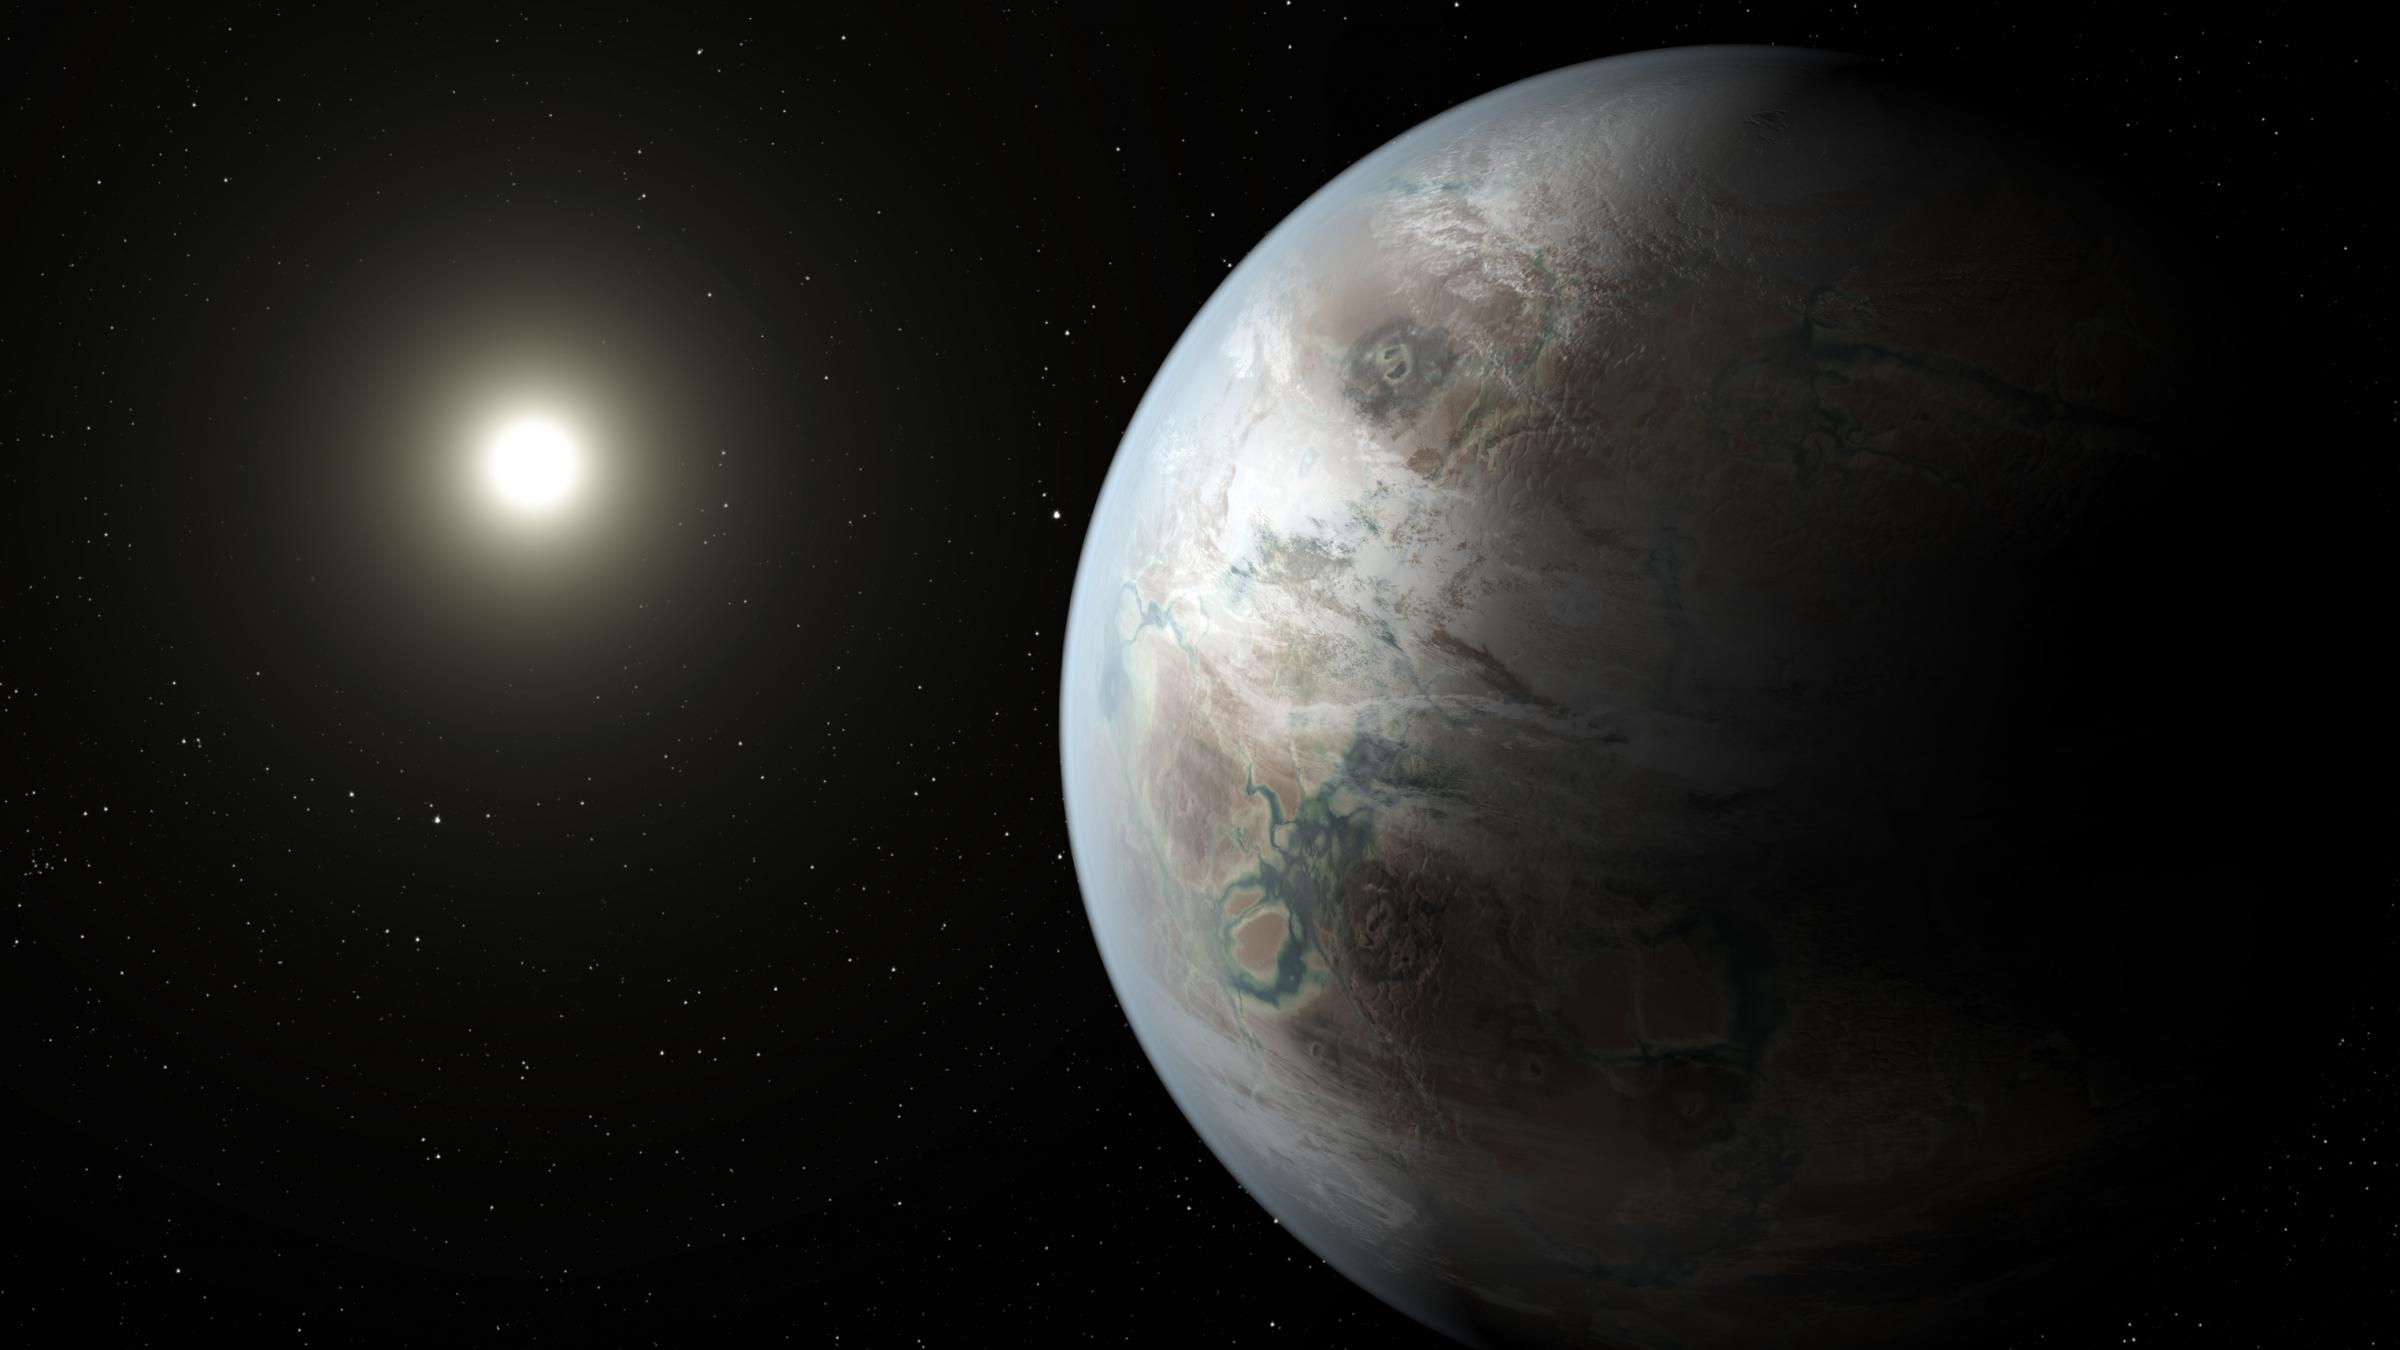 10 new planets that could have life discovered